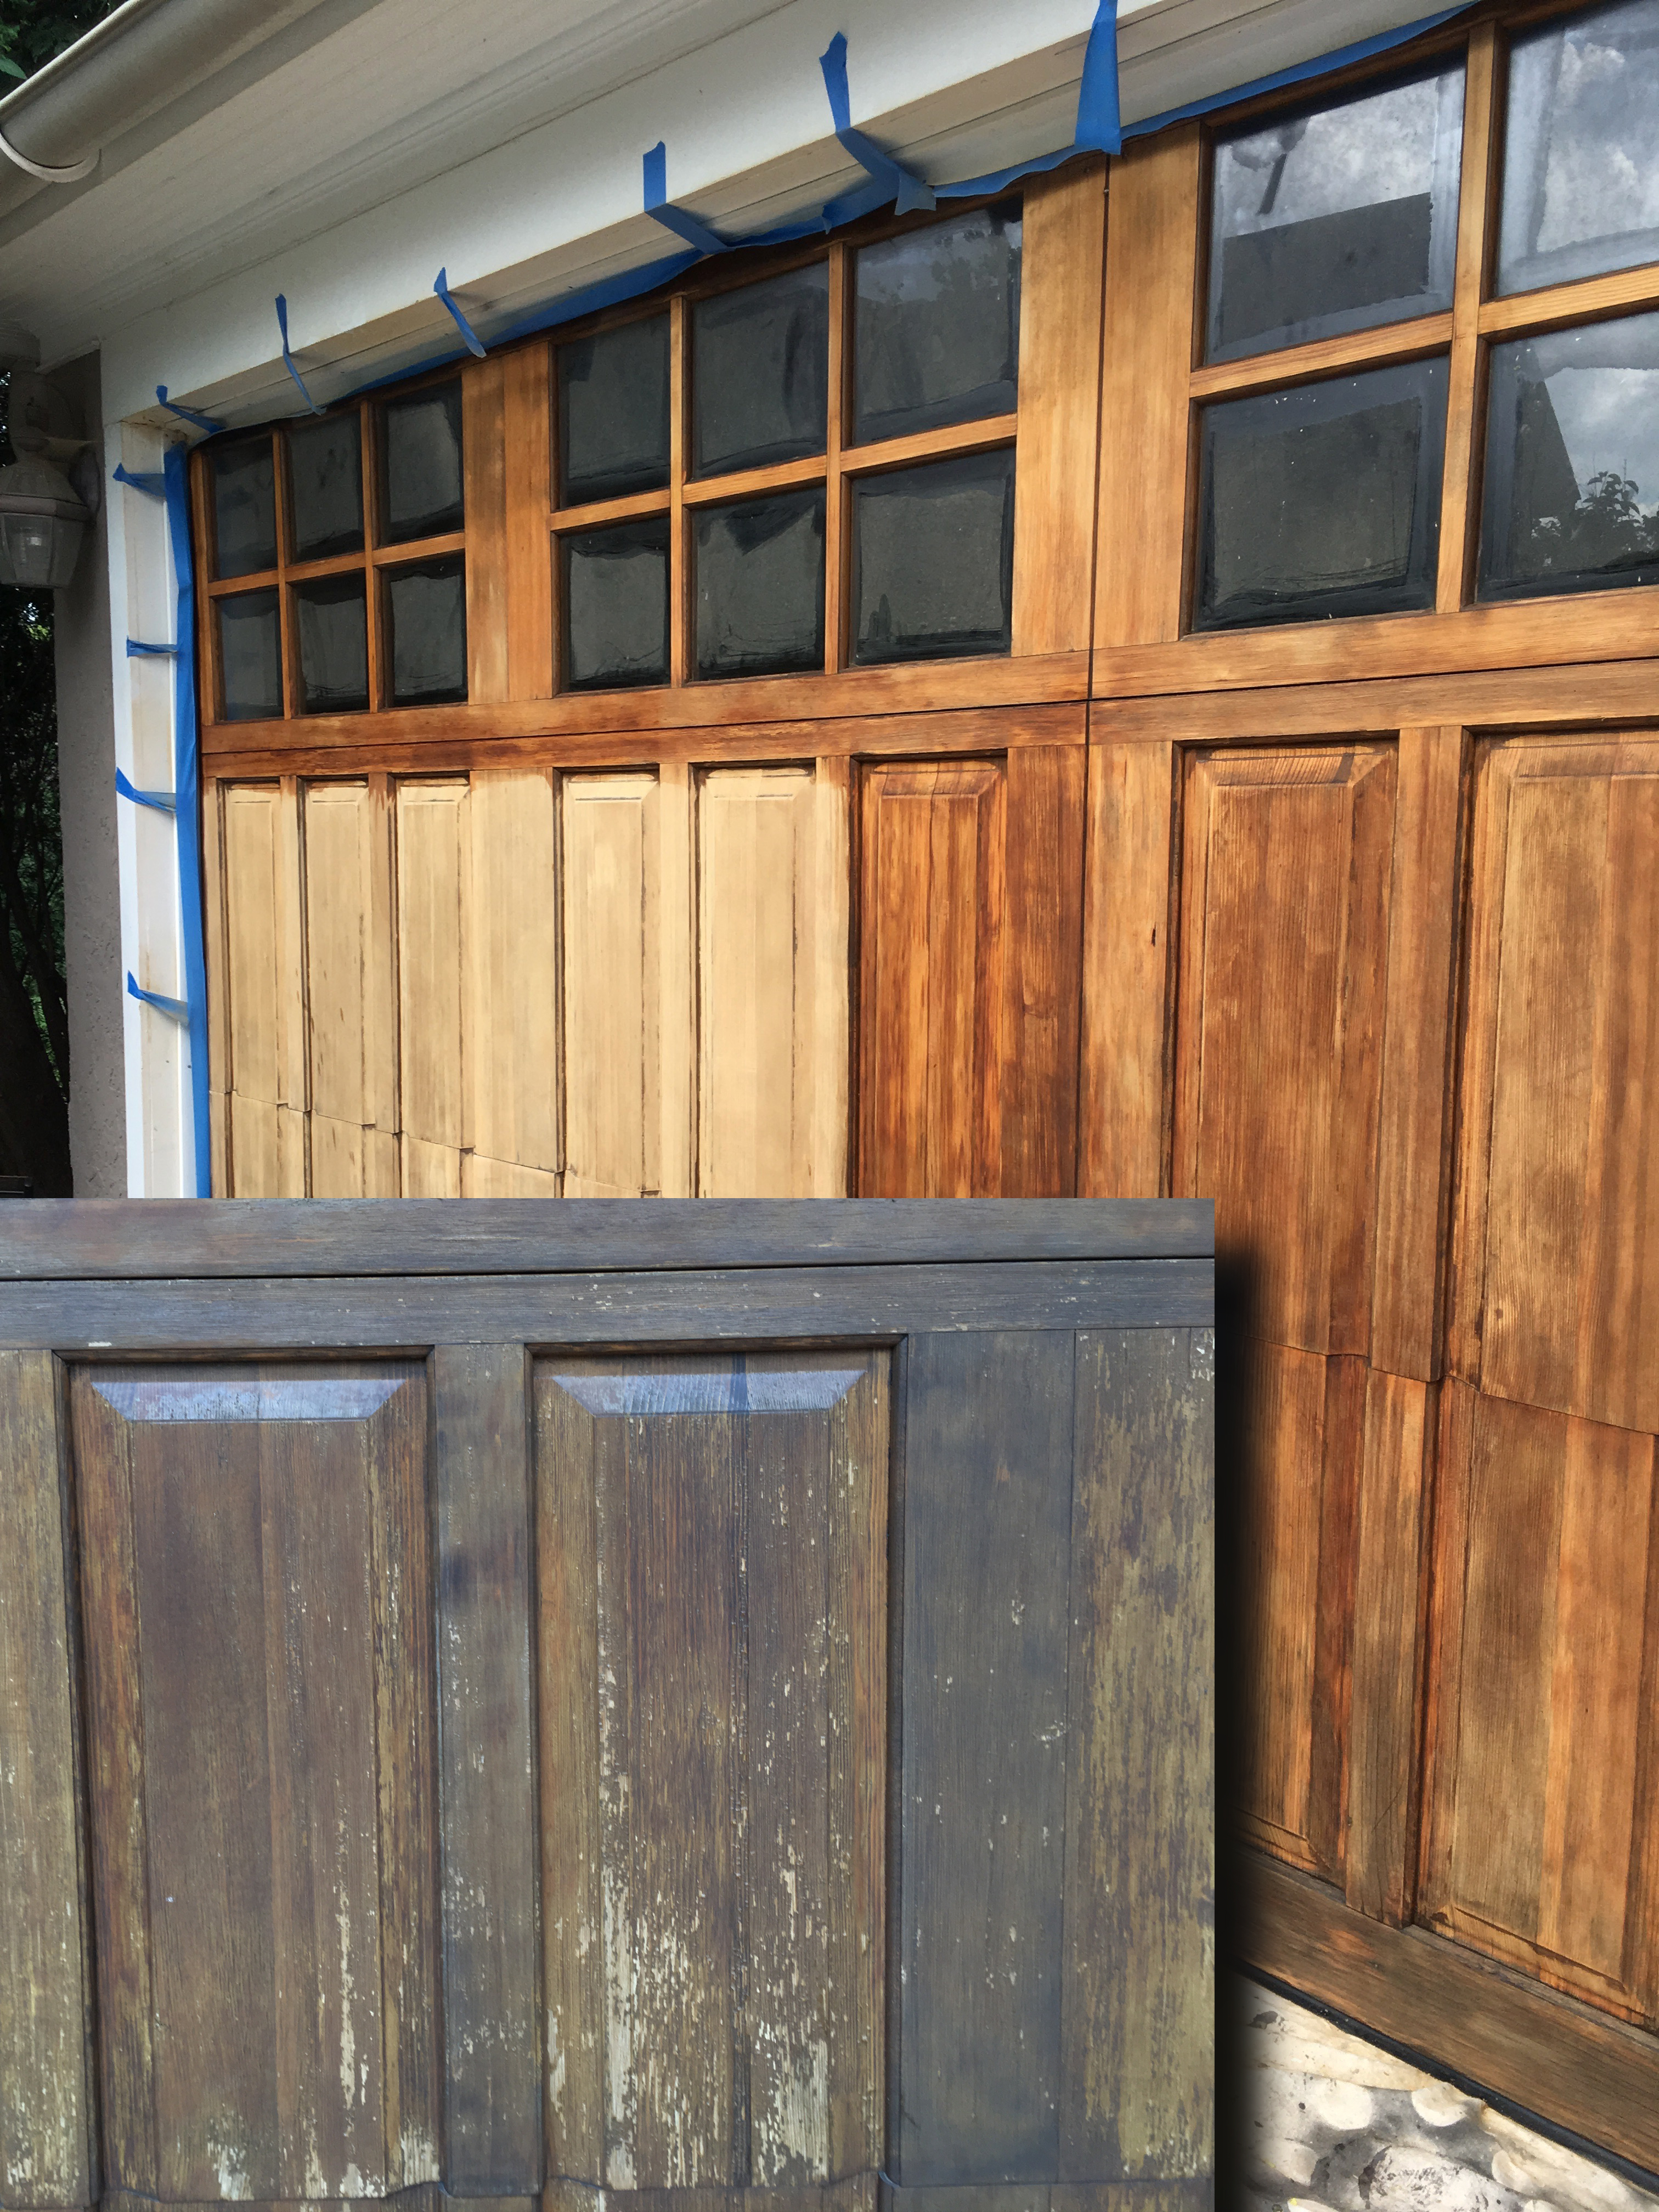 This Shows A Before And In Progress Refinishing Of A Garage Door That Was  In Need Of More Than Just Another Coat Of Varnish. Some Of The Rails And  Panels ...